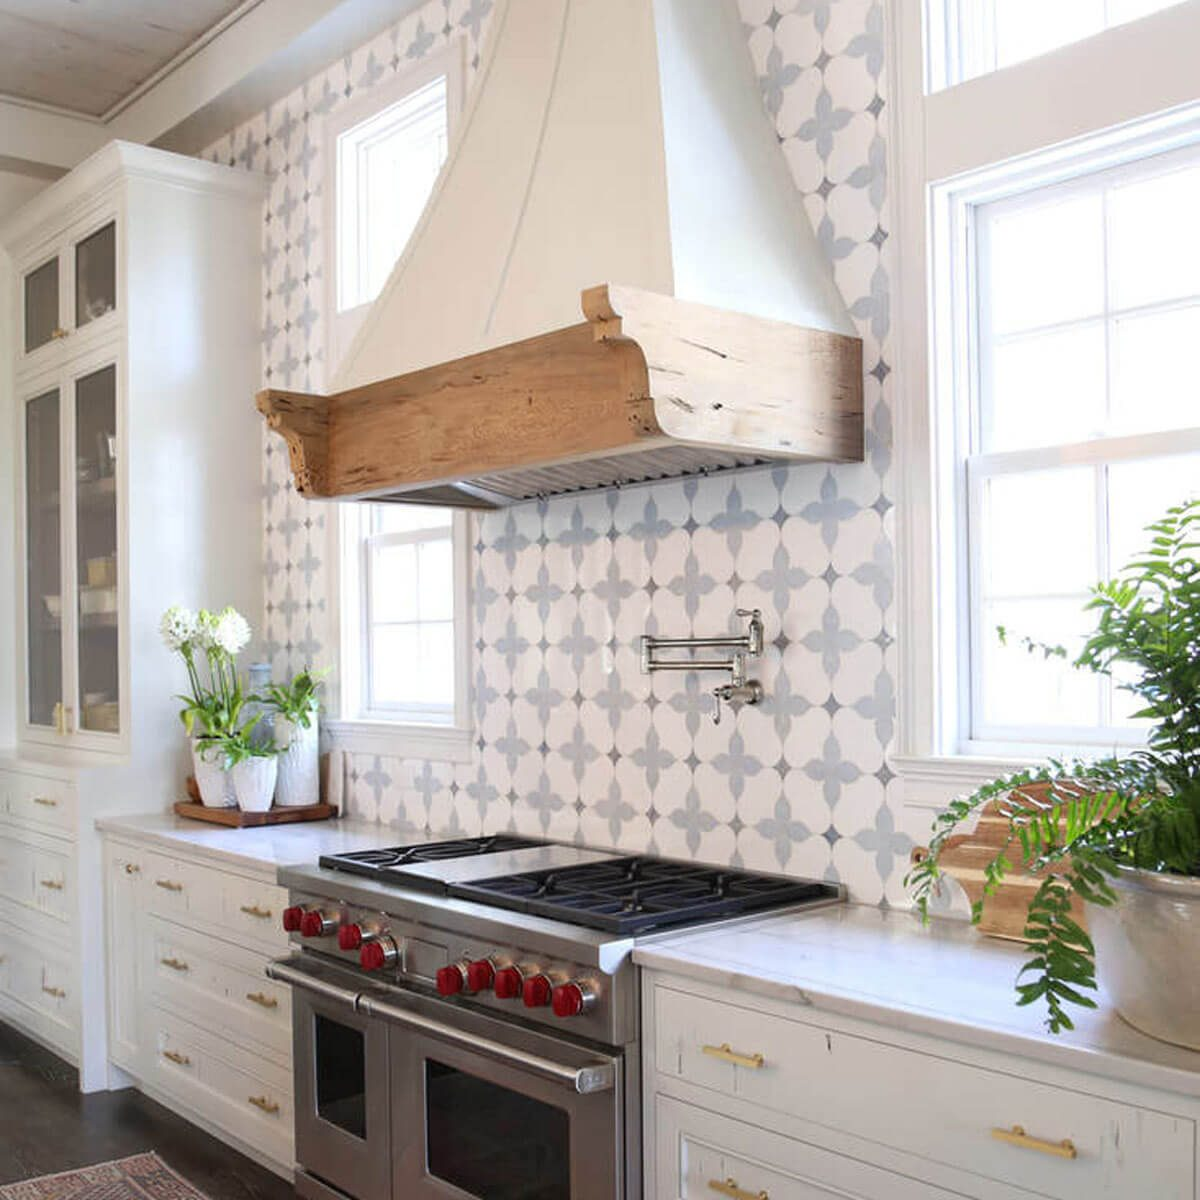 The 30 Backsplash Ideas Your Kitchen Can't Live Without ... Ideas For Decorating Above Kitchen Stove Backsplash on cabinets above stove, lighting above stove, backsplash behind stove, tile mural above stove, subway tile above stove, decorative tile above stove, microwave above stove, accent tile above stove,